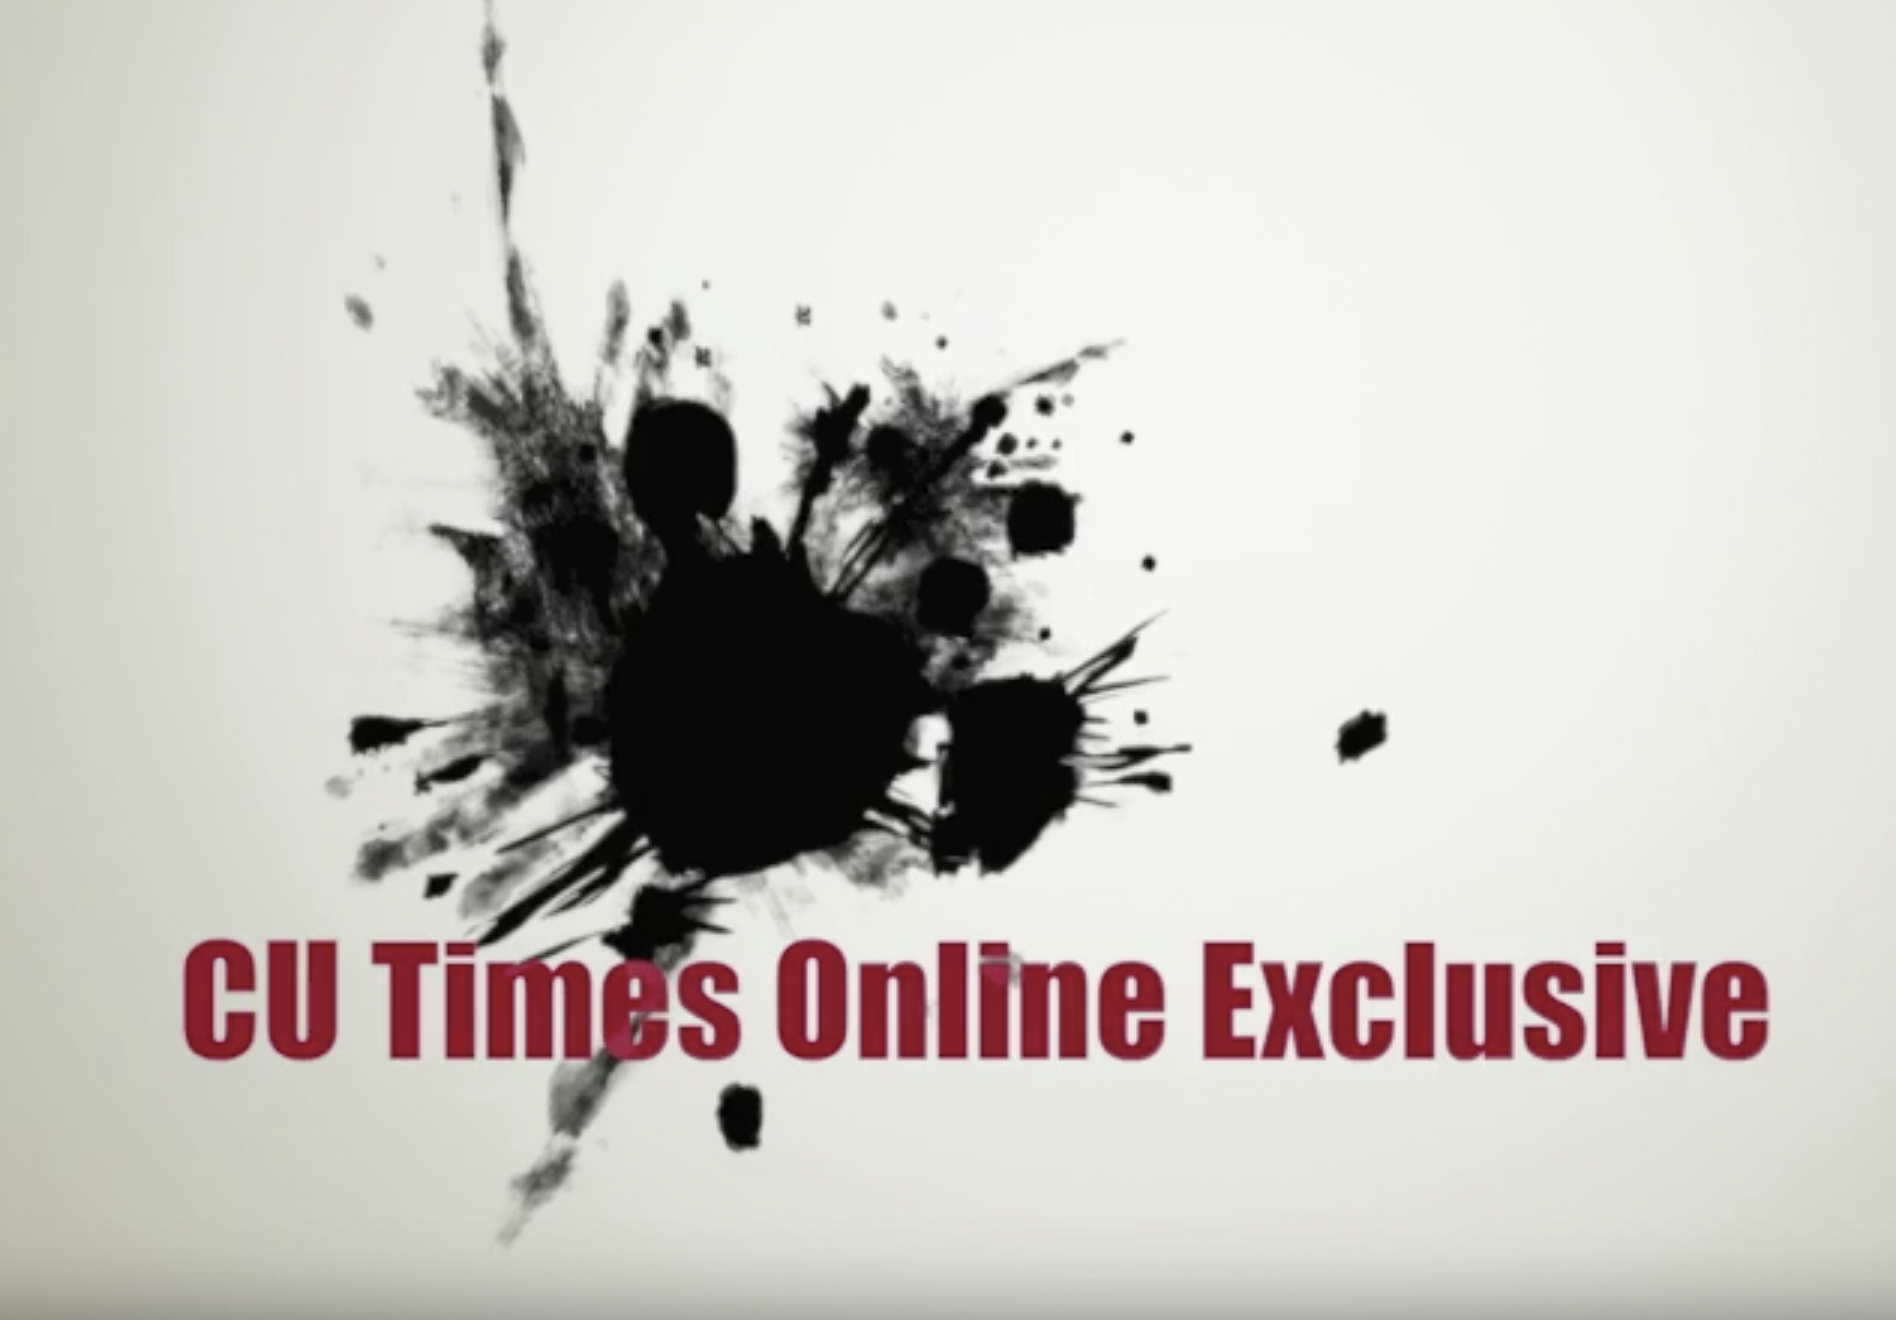 CU Times Online Exclusive